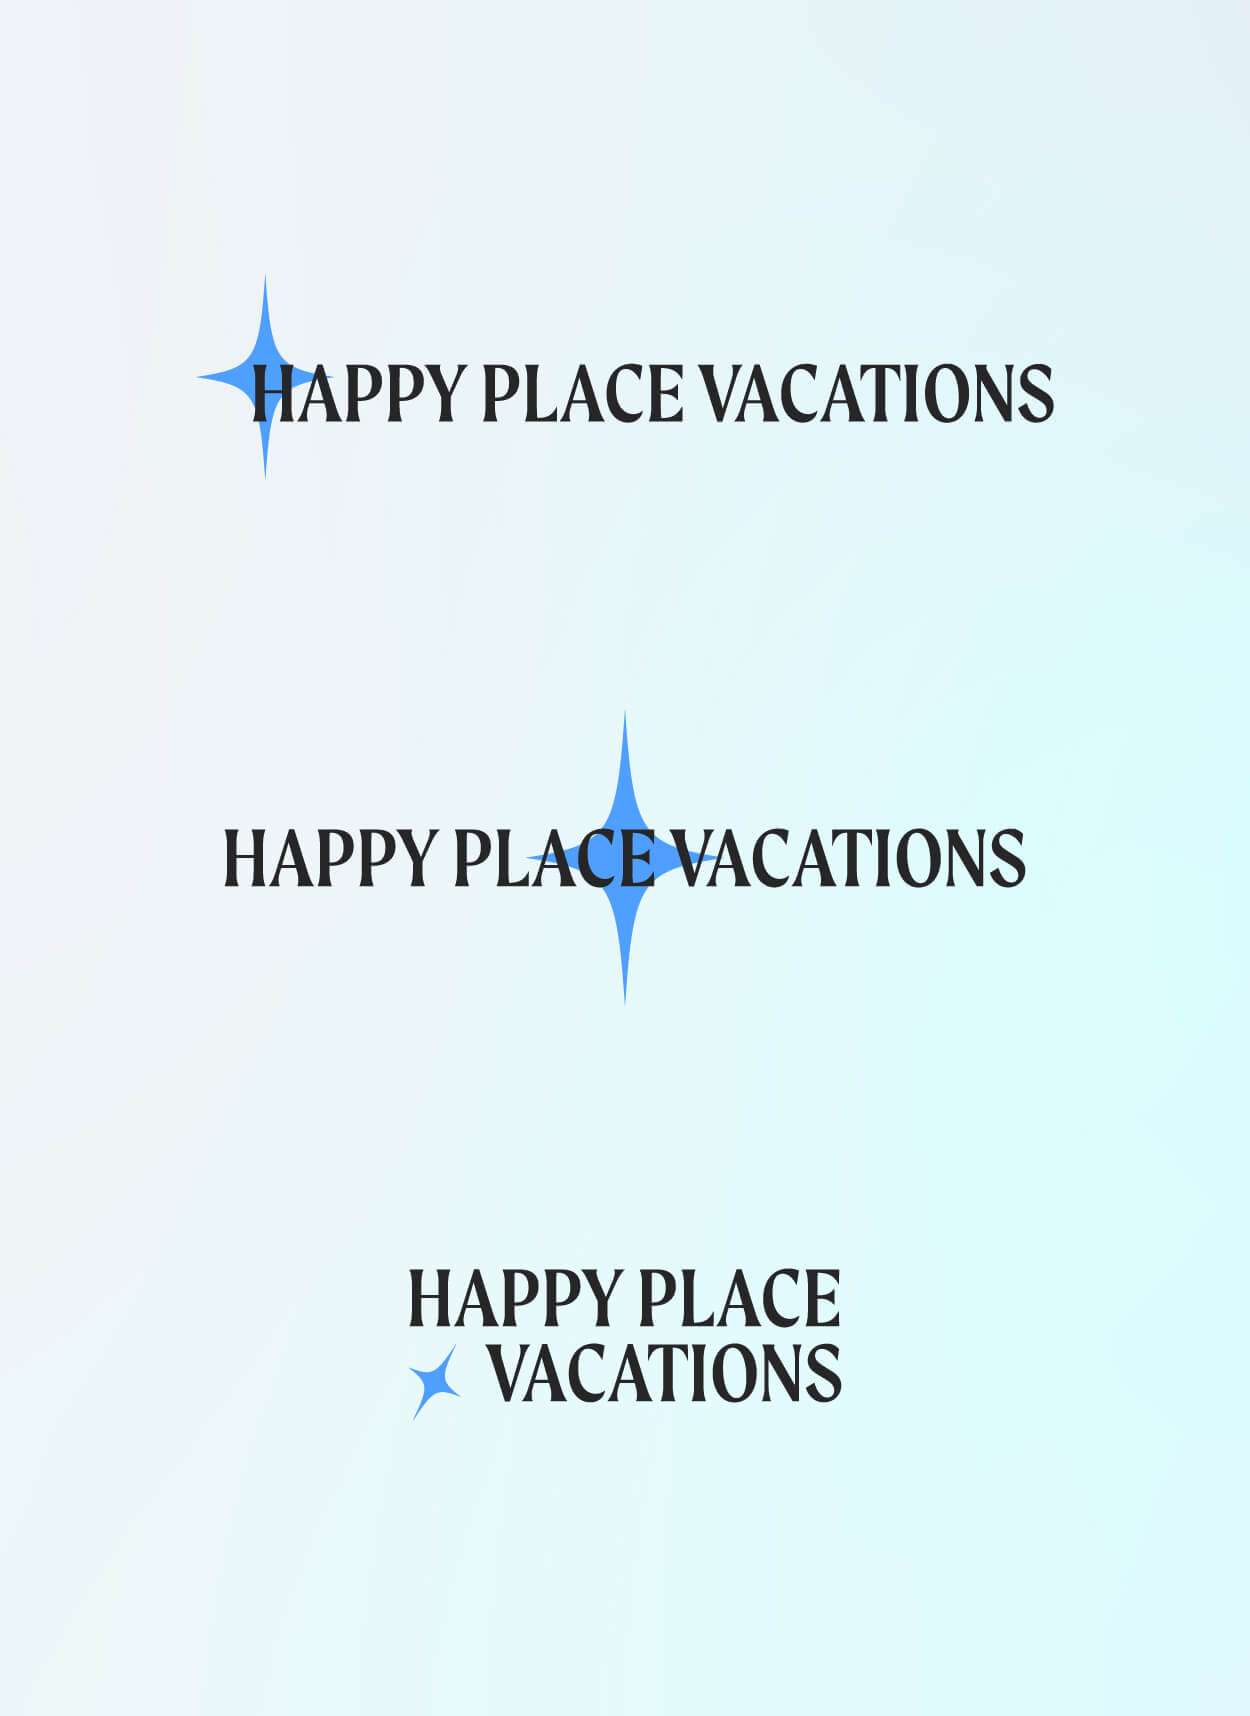 Three variants on the Happy Place Vacations logo